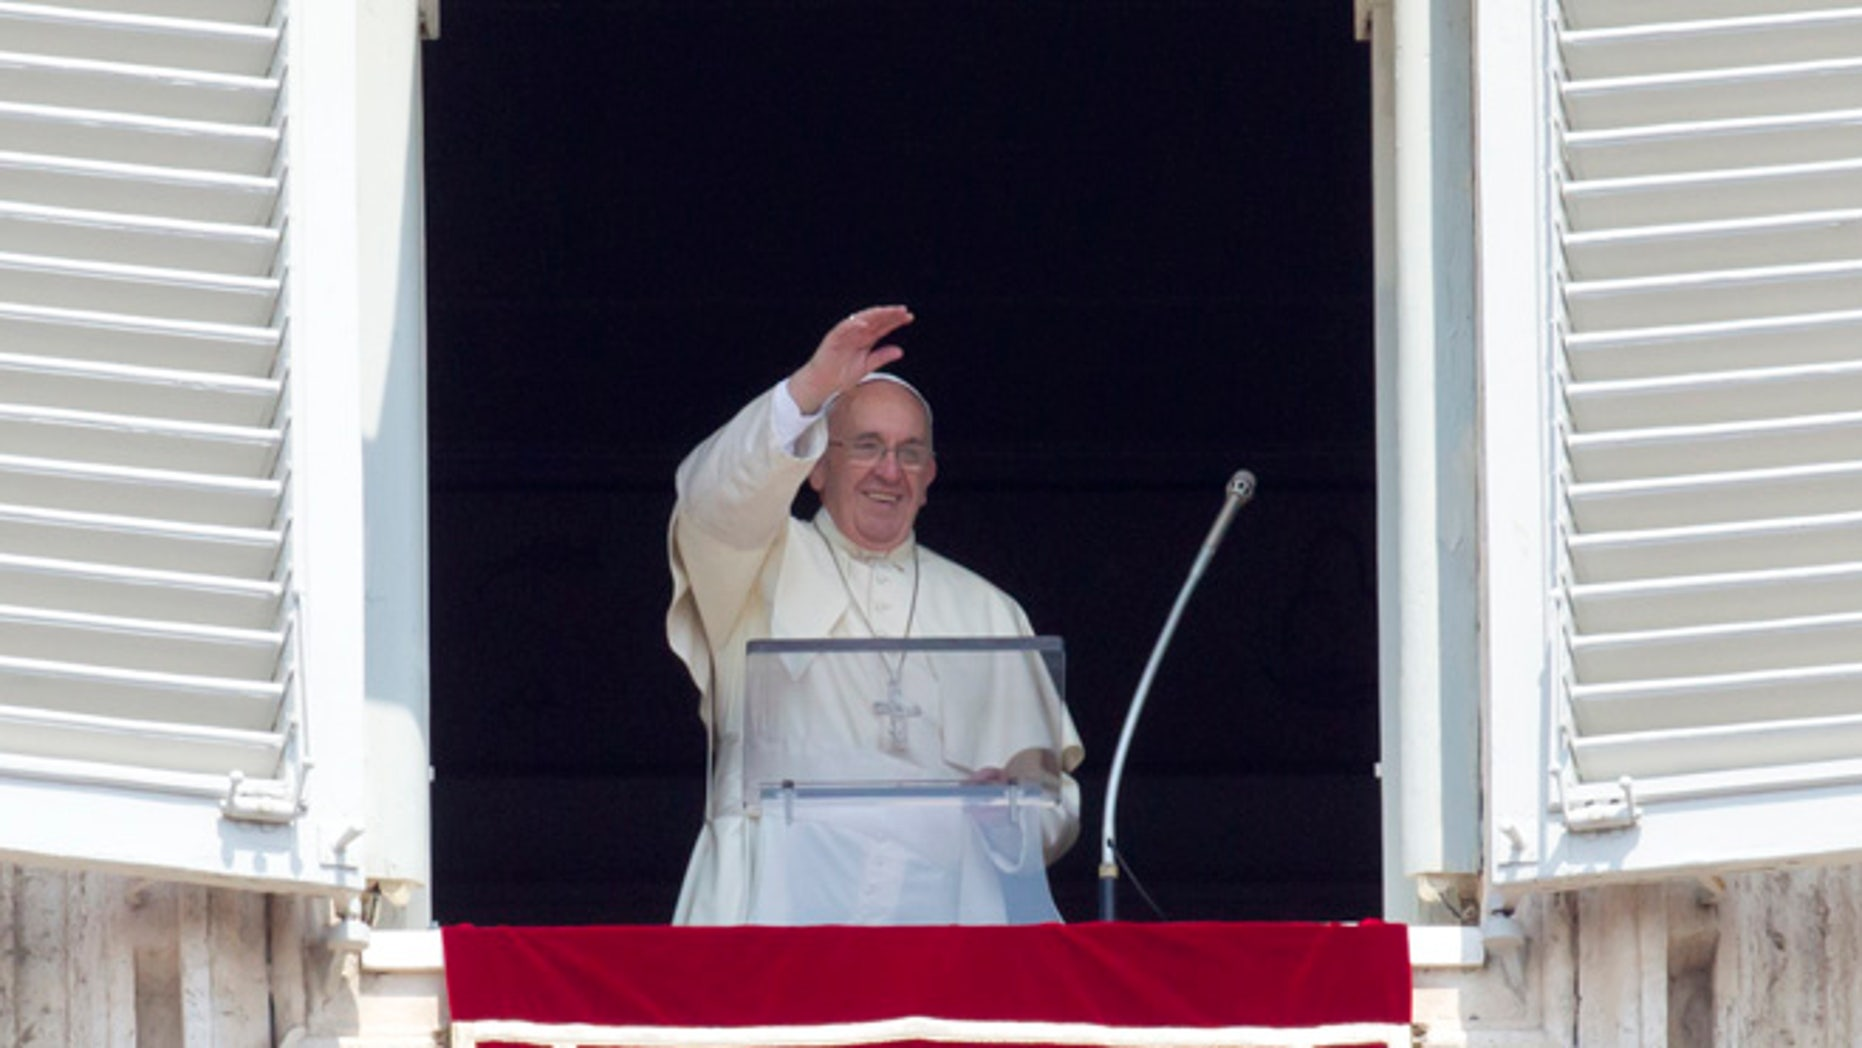 Aug. 9, 2015: Pope Francis waves before reciting the Angelus noon prayer from his window overlooking St. Peter's Square at the Vatican, in Italy.